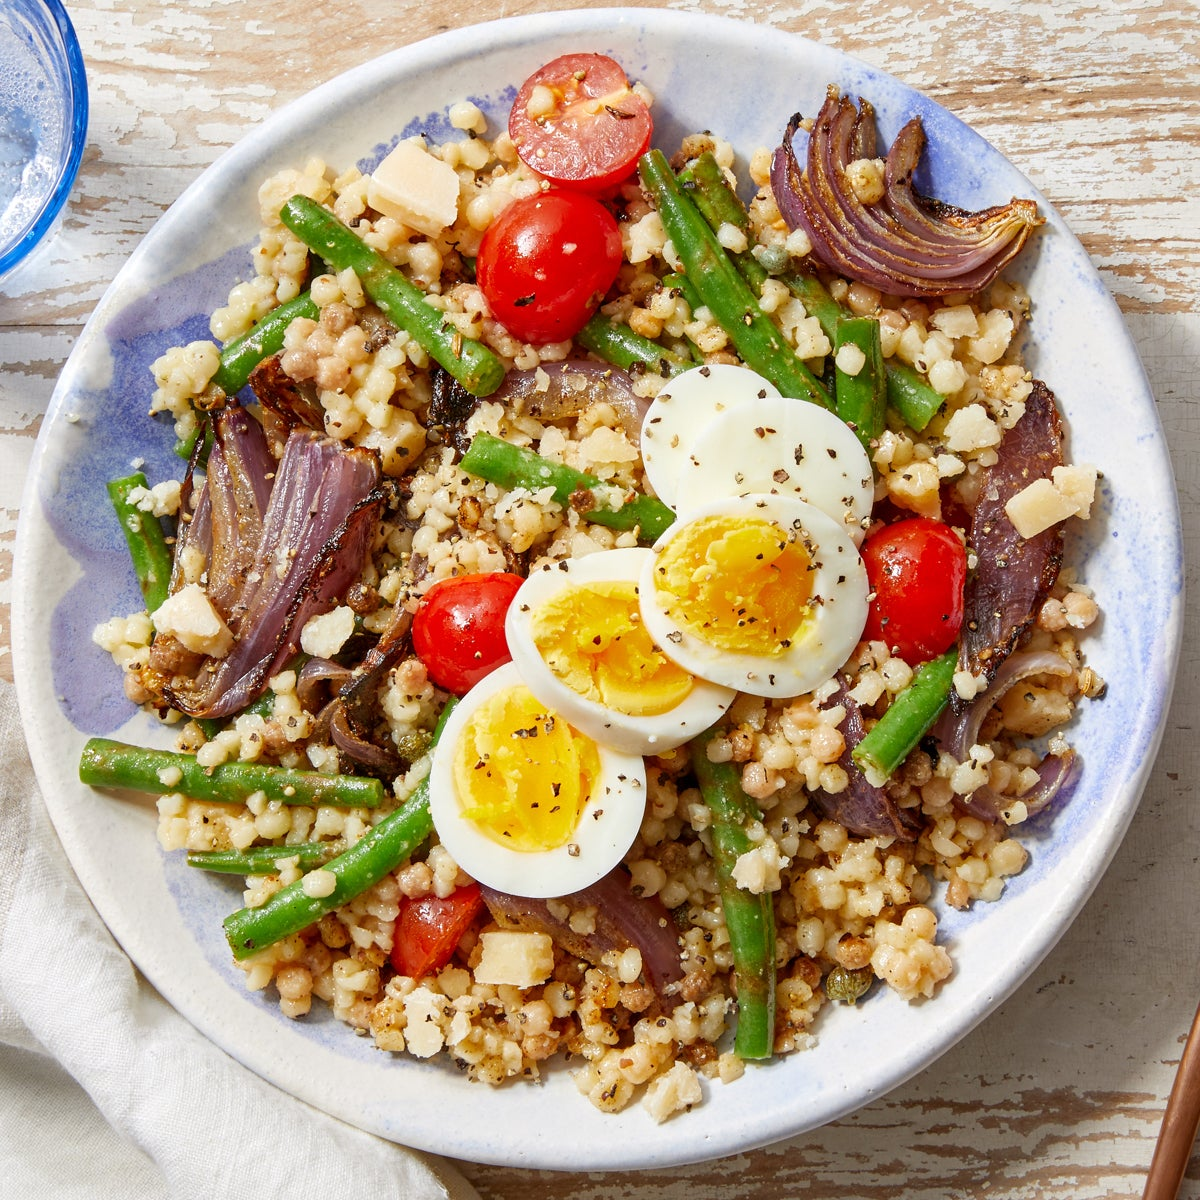 Summer Fregola Sarda Pasta with Green Beans, Tomatoes & Hard Boiled Eggs